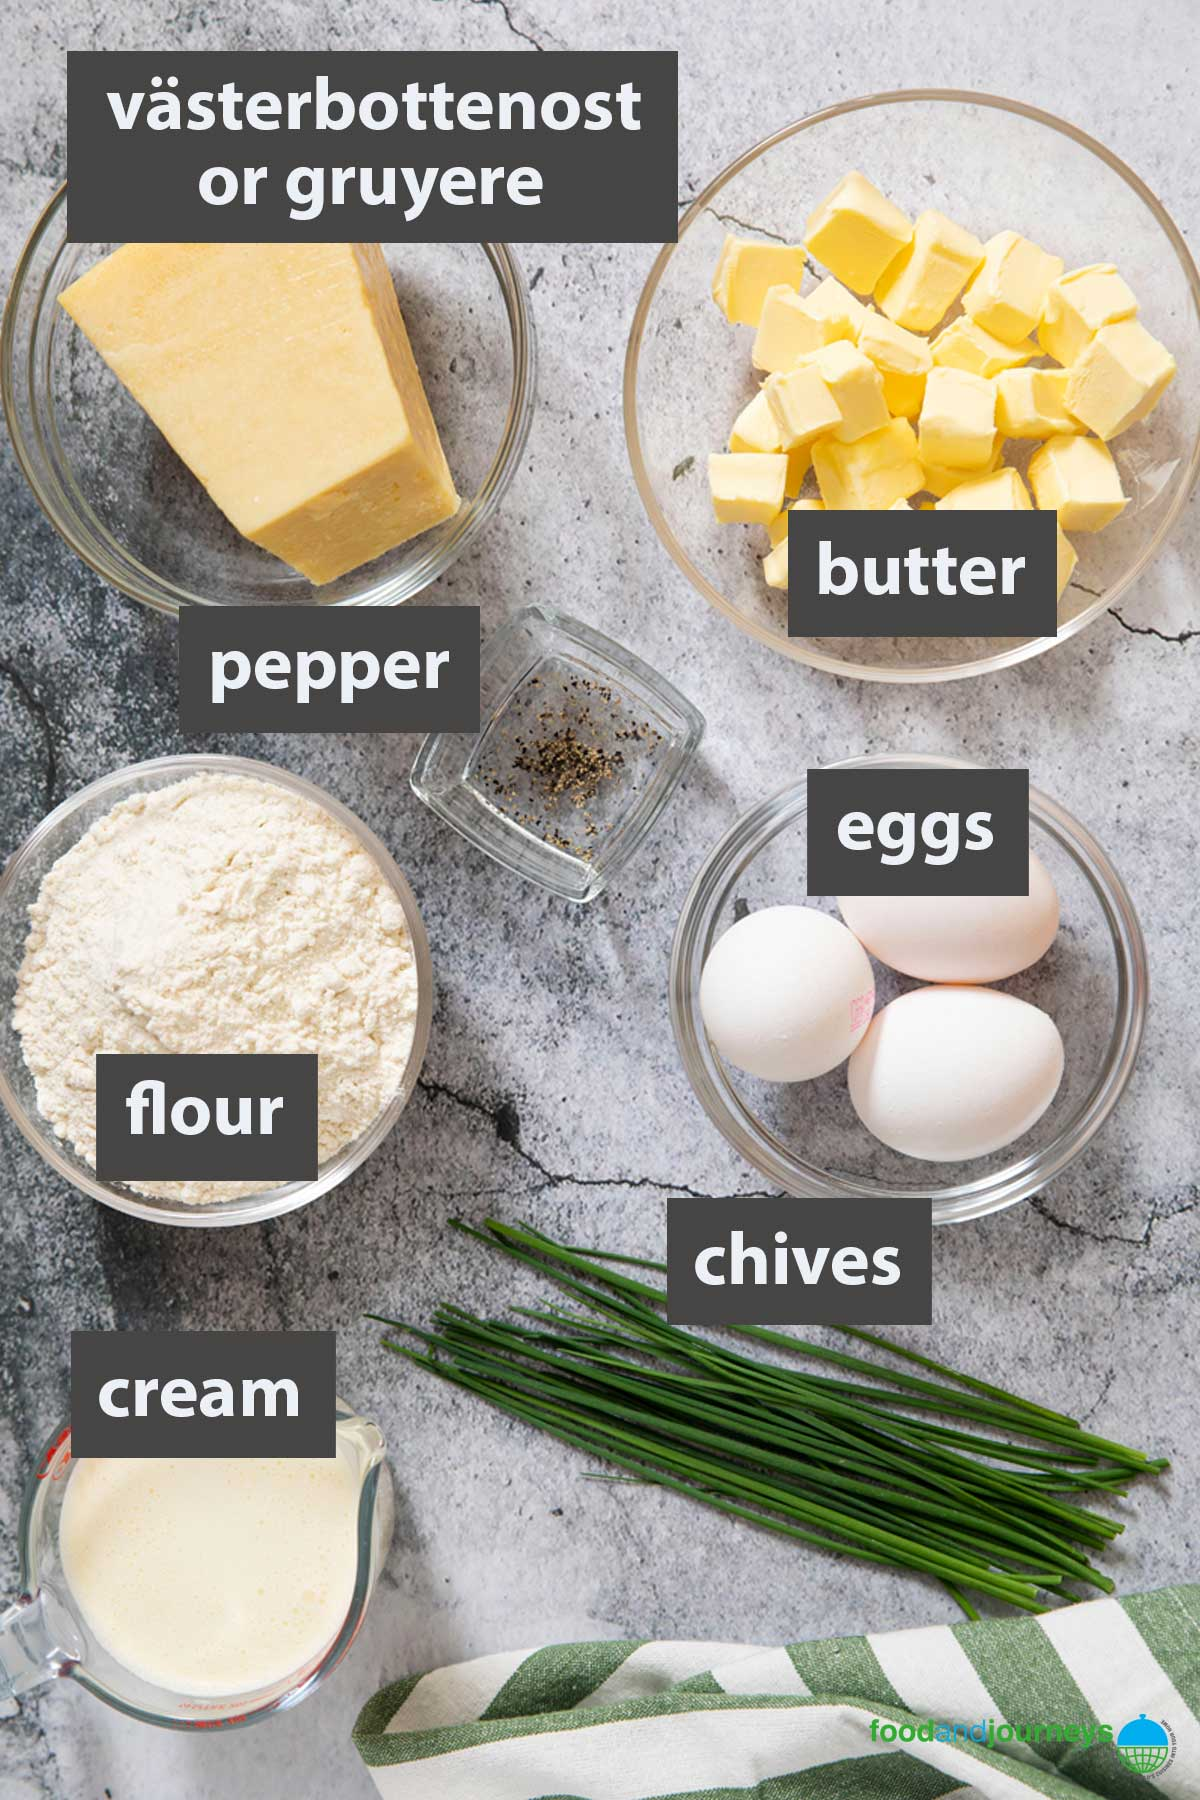 An image showing all the ingredients needed to make your own cheese pie at home.